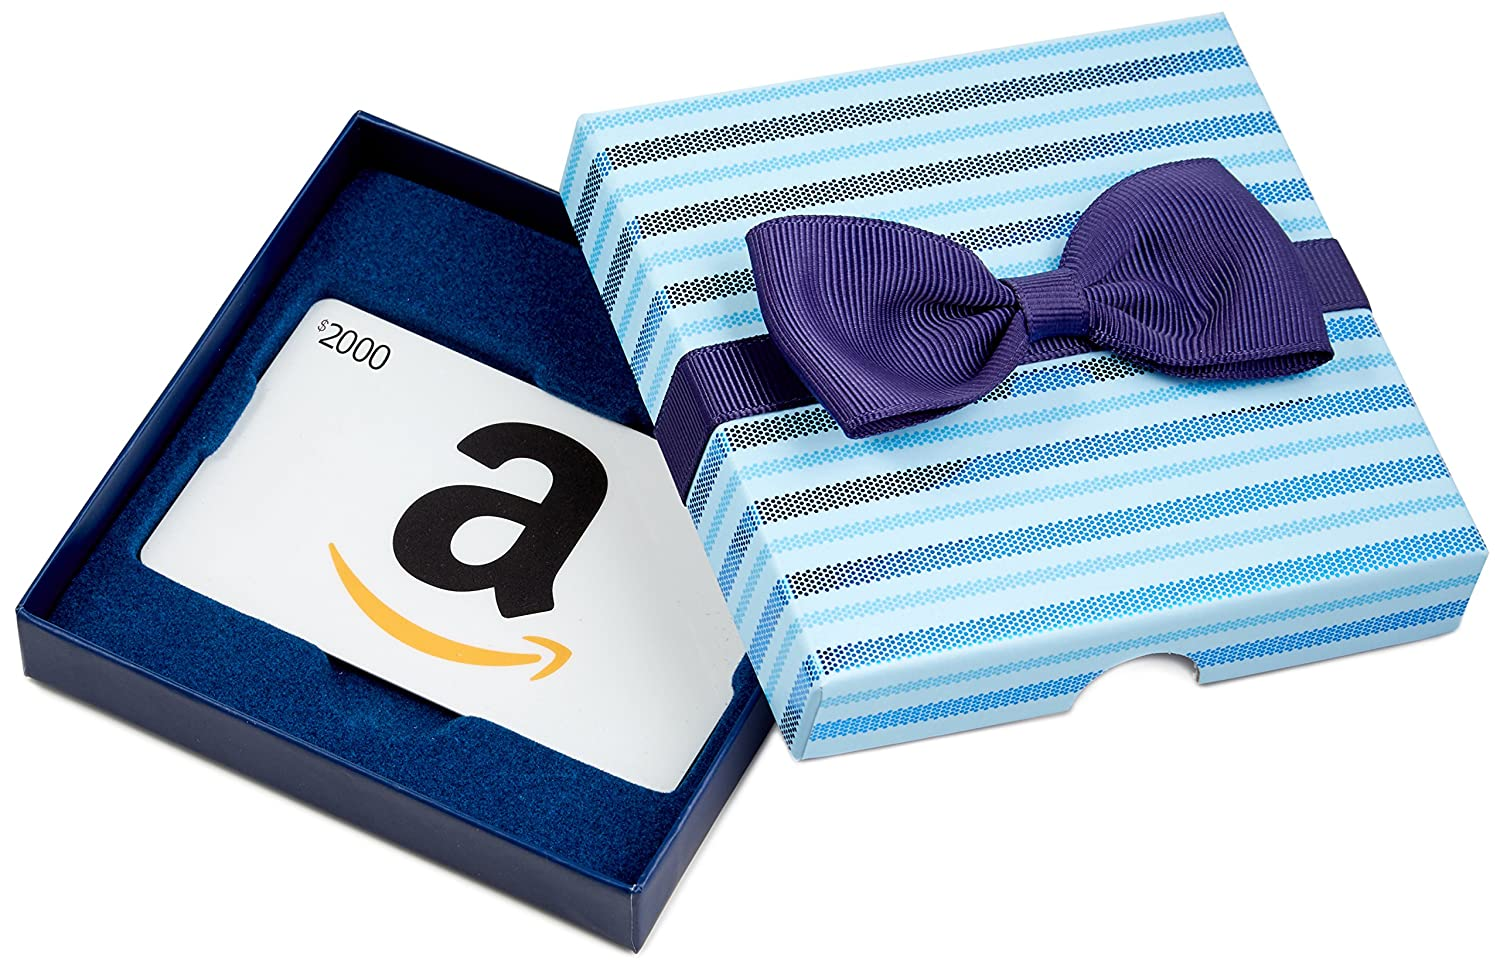 Limited Special Price National products Amazon.com Gift Card Boxes in Various